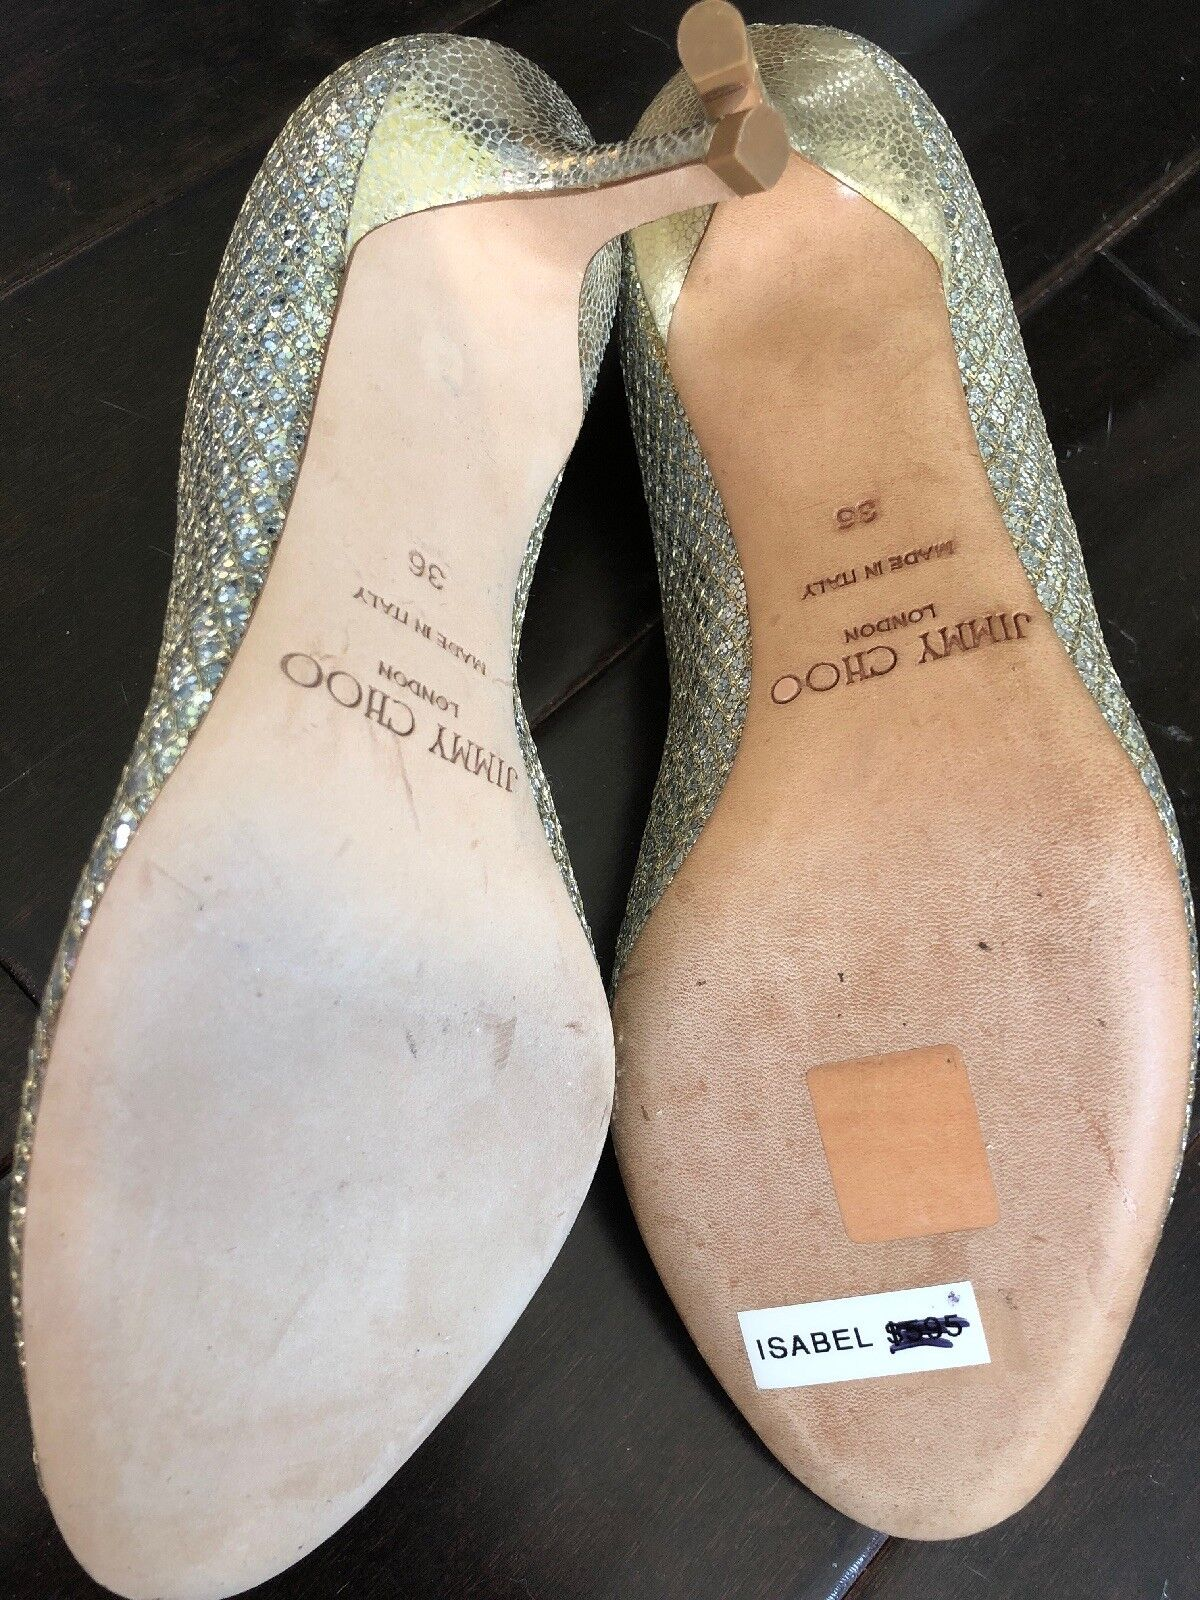 JIMMY CHOO ISABEL ISABEL ISABEL Champagne Glitter Fabric Peep Toe Pumps Taille 36 6d7be4